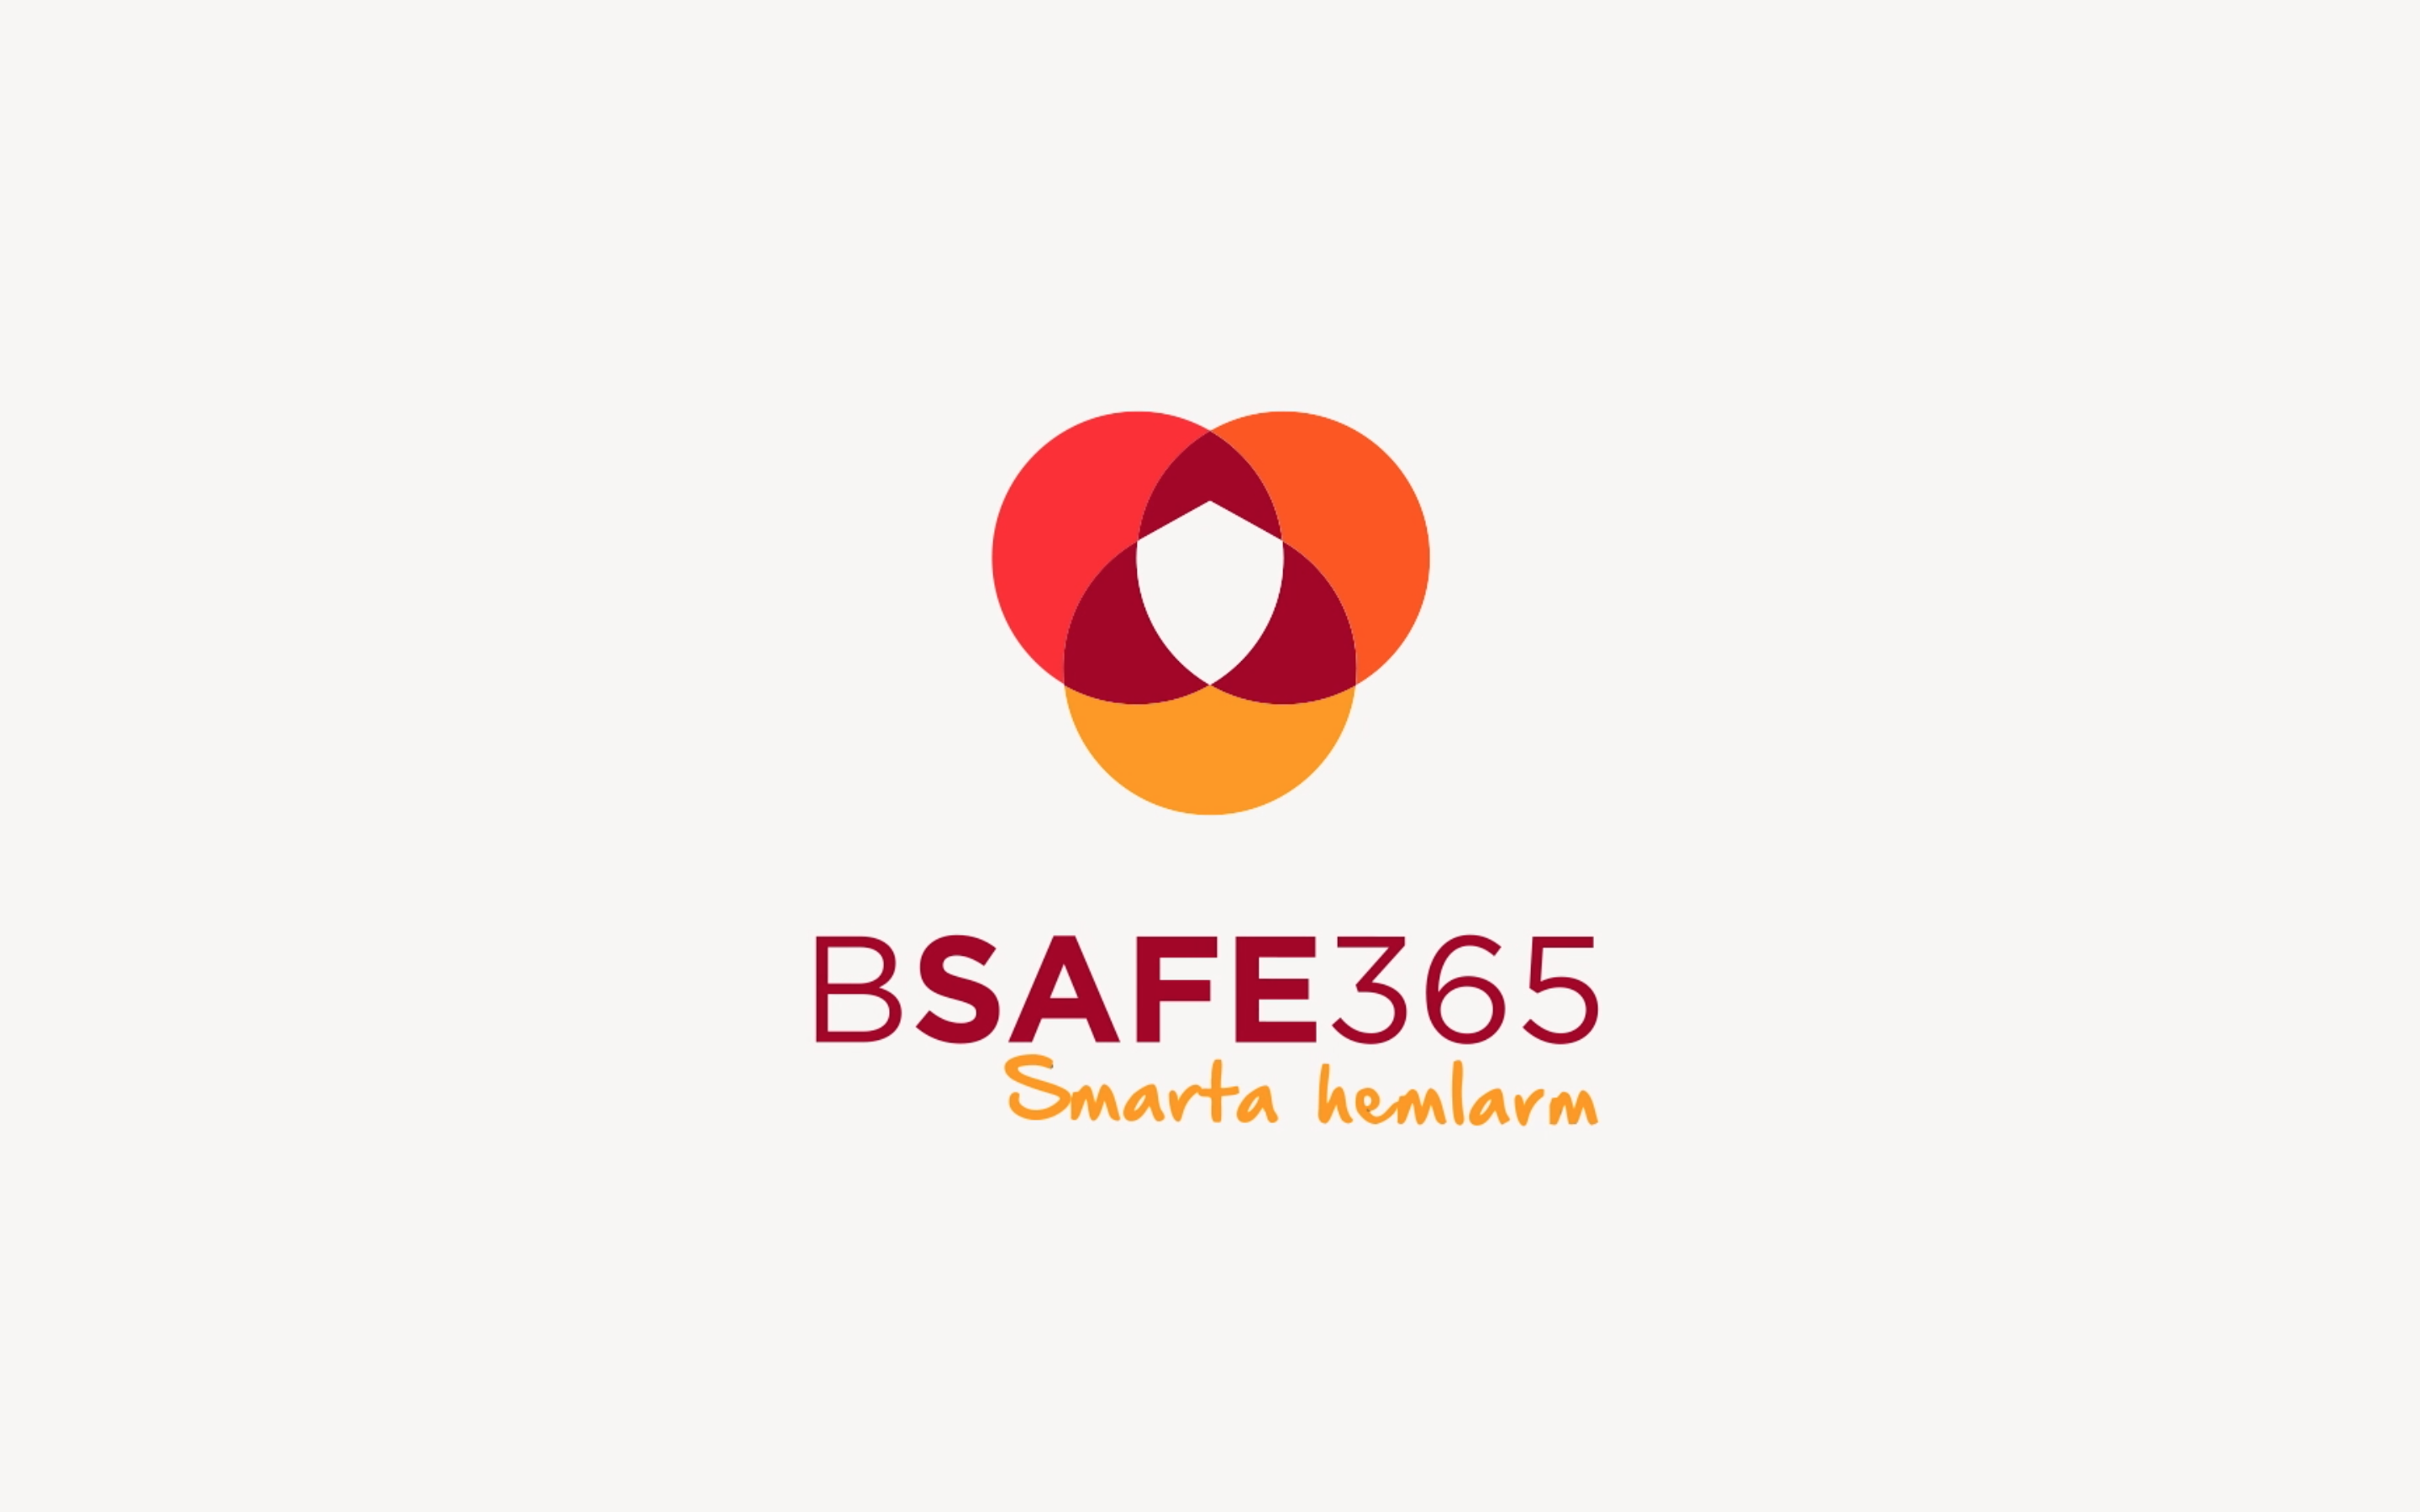 BSAFE365 Animerad Video Reklamfilm - Storisell AB https://storisell.se/portfolio/bsafe365/